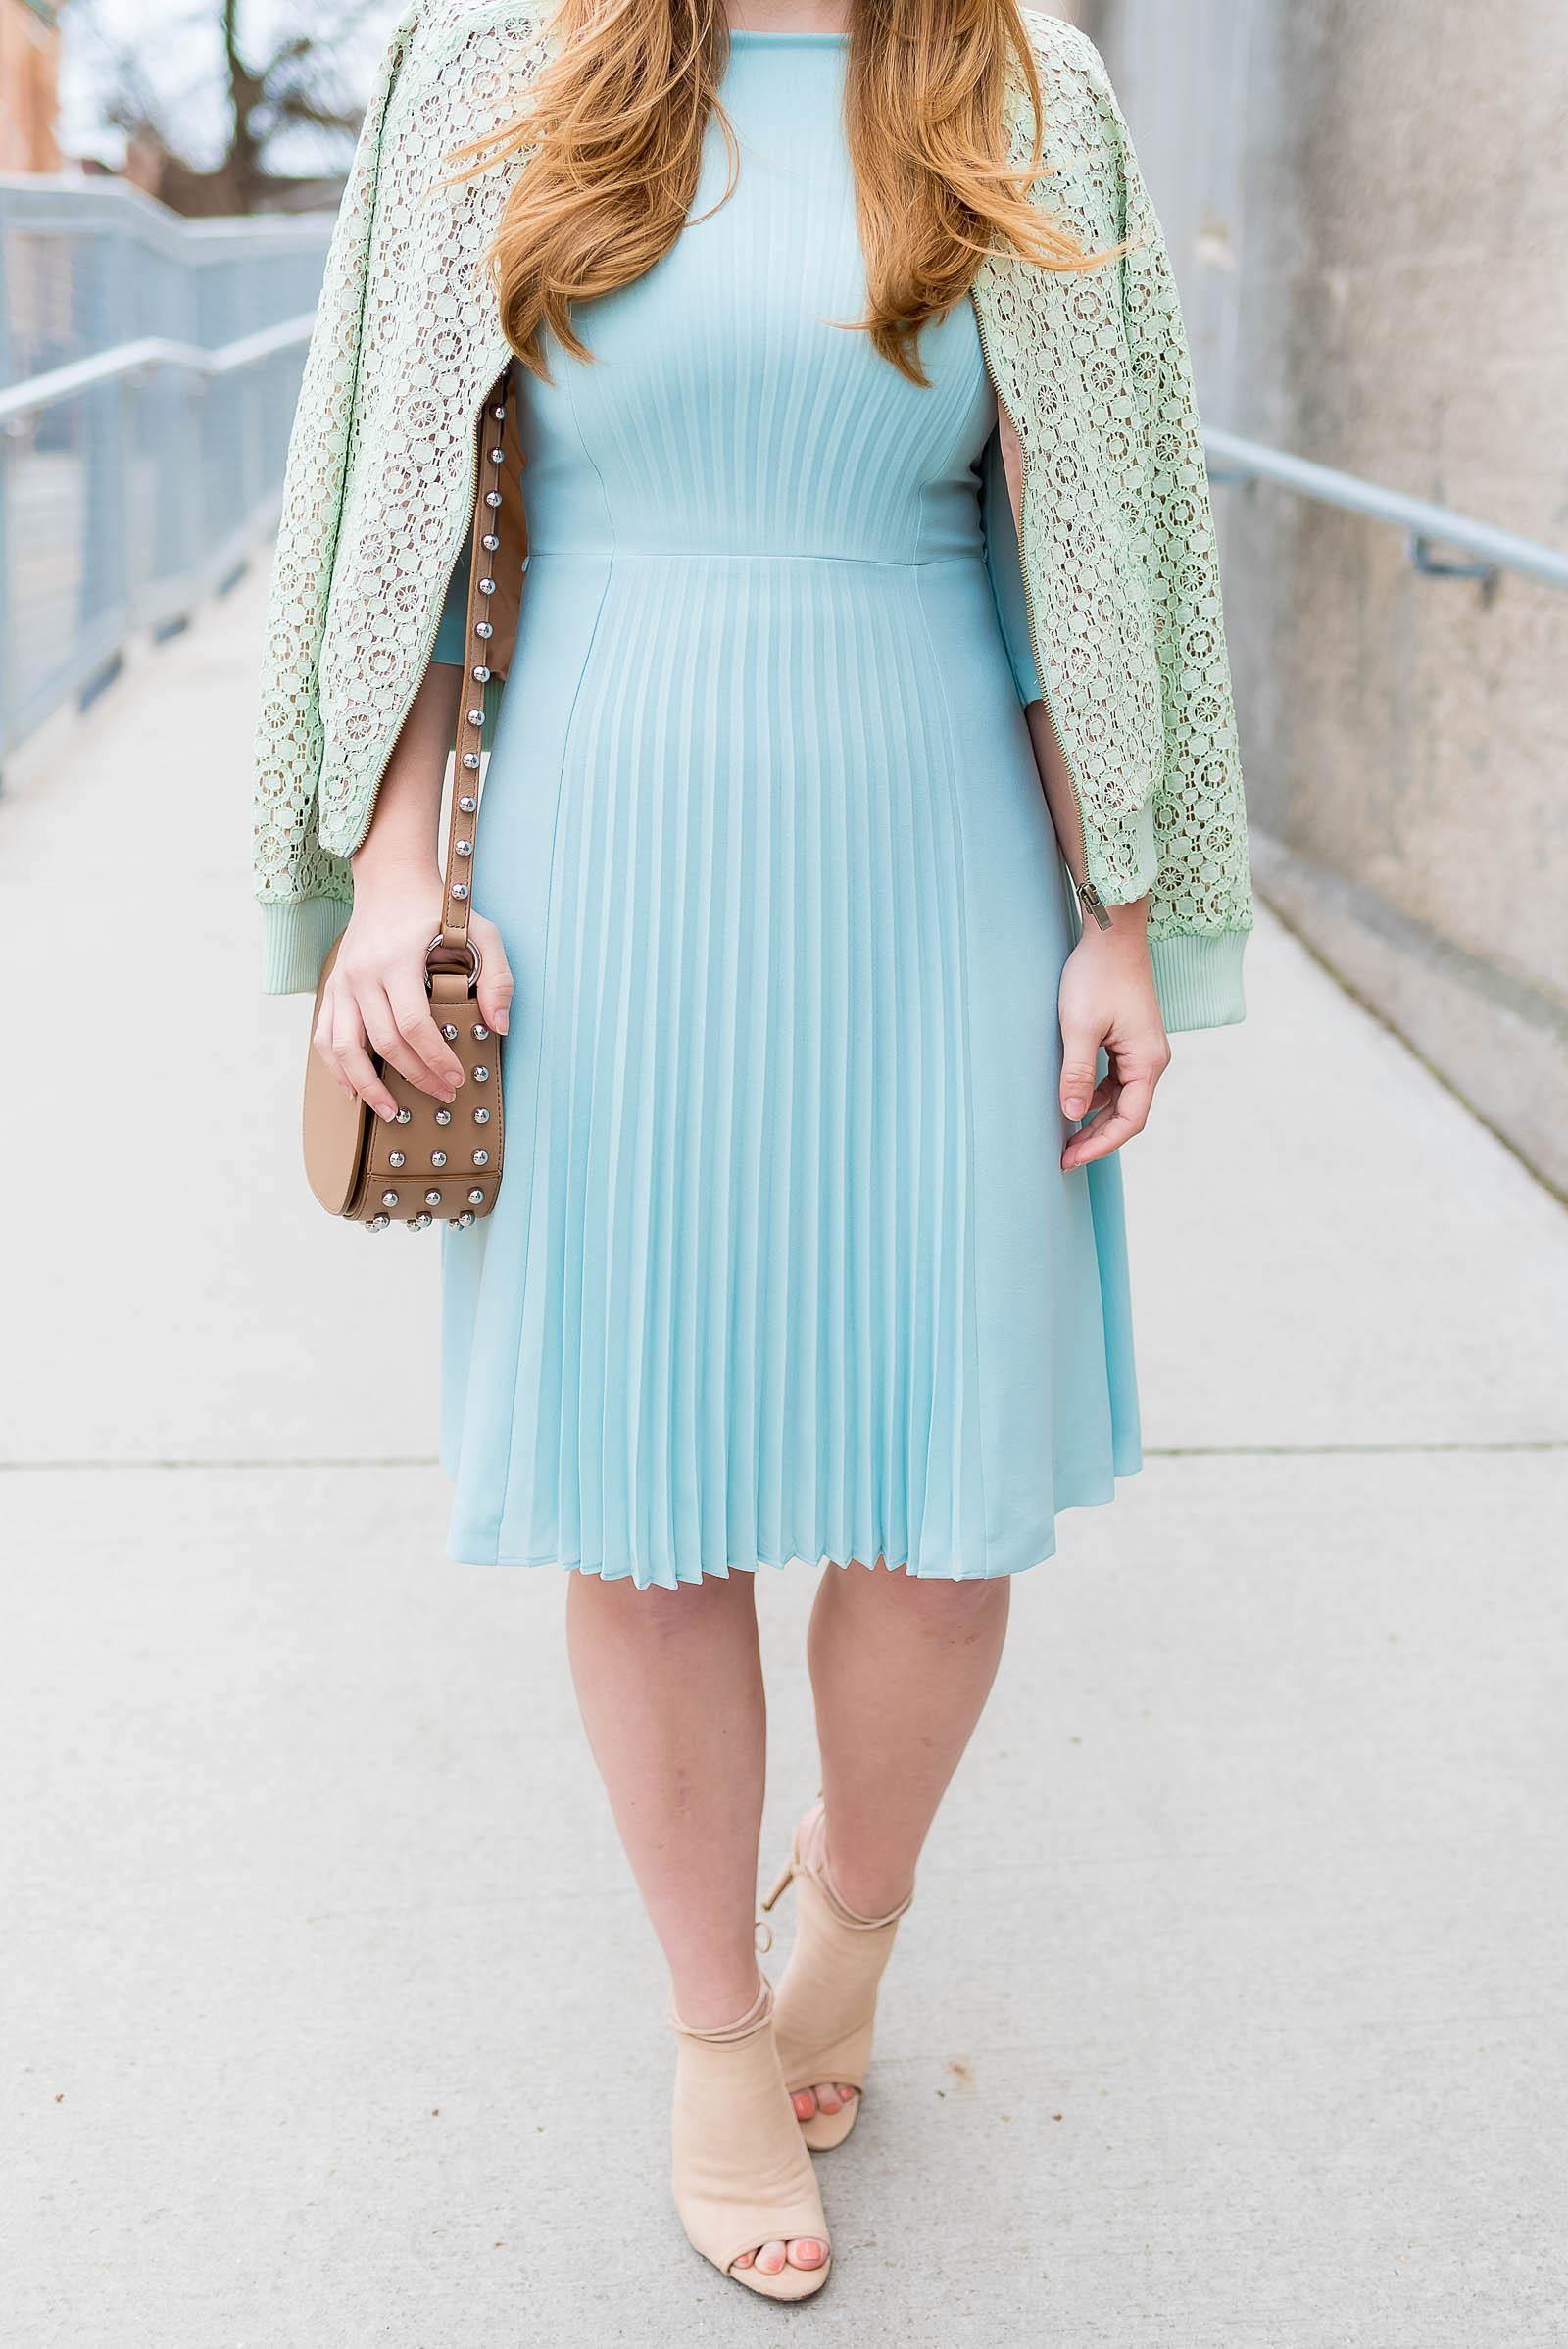 Hugo Boss Duck Blue Pleated Dress, Victoria Beckham for Target Lace Mint Green Bomber Jacket, Aquazzura Mayfair Booties in Nude Suede, Alexander Wang Lia Mini Studded Bag